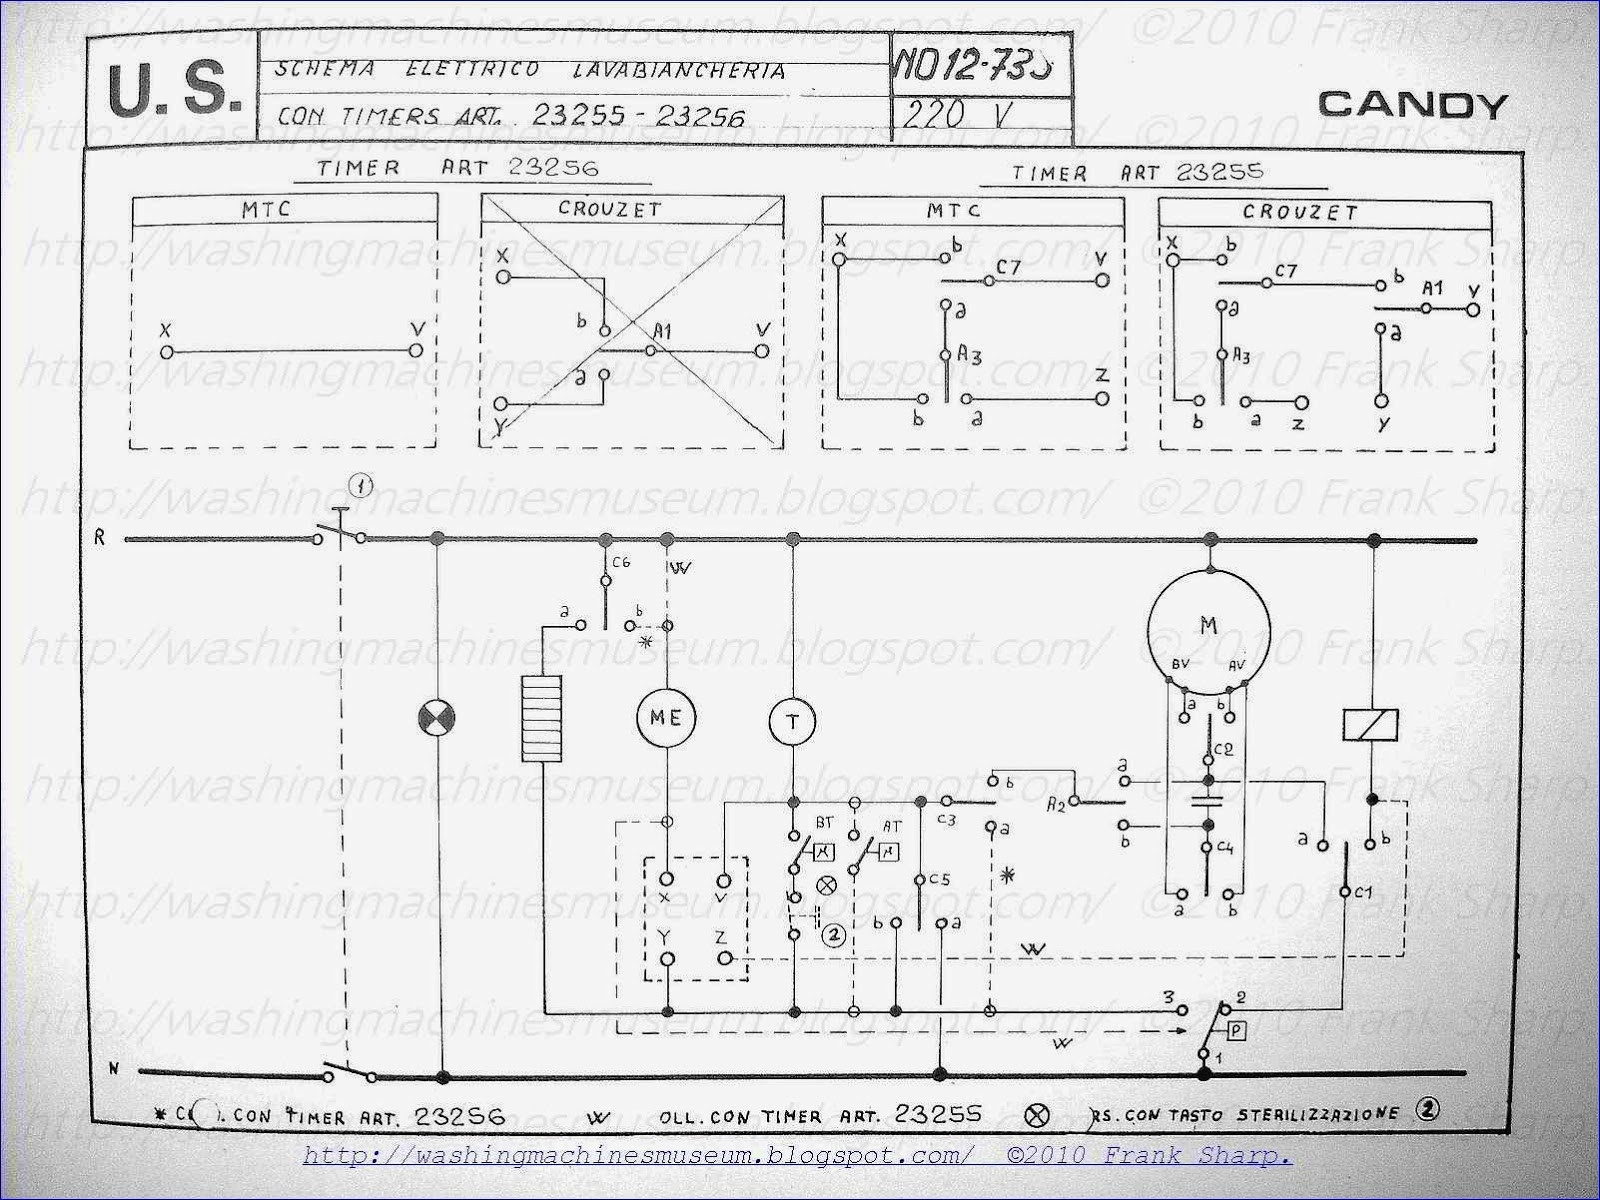 Washing Machine Wiring Diagram and Schematics - Wiring Diagram Appliance Dryer Inspirationa Washer Rama Museum Candy Washing Machine with Timer 6g